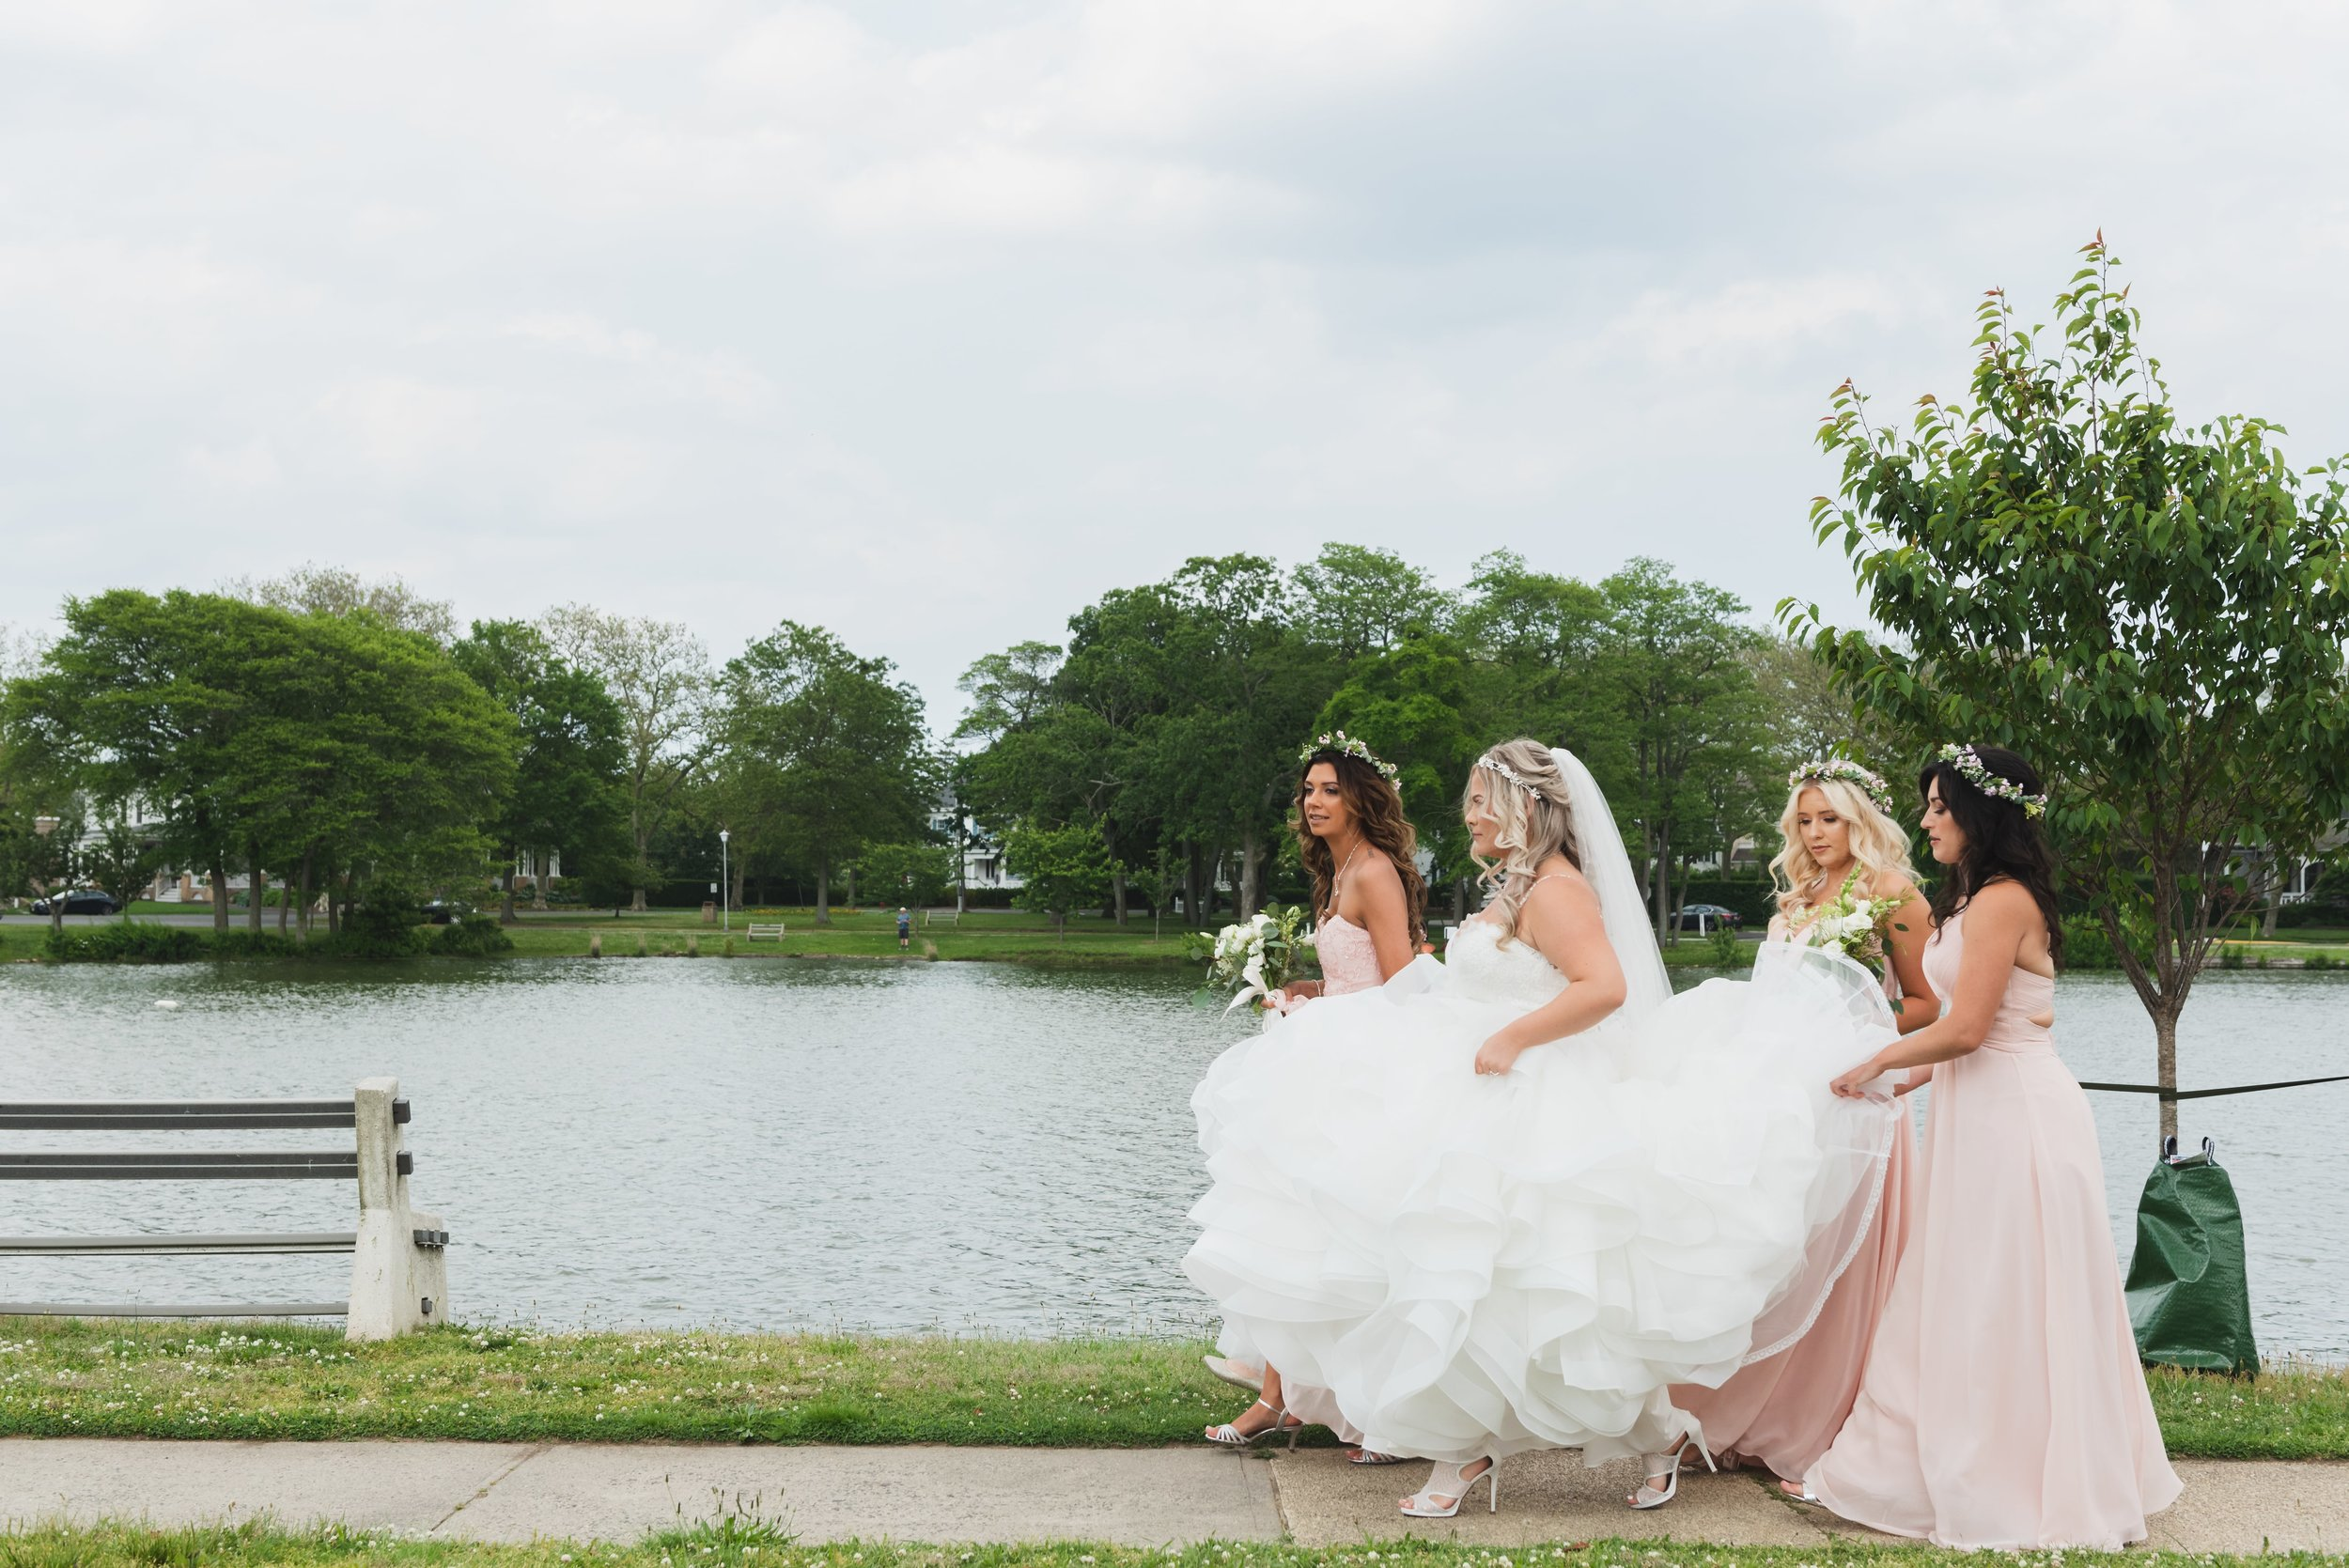 Bride on her way to the first look with her bridesmaids holding her trailing dress.